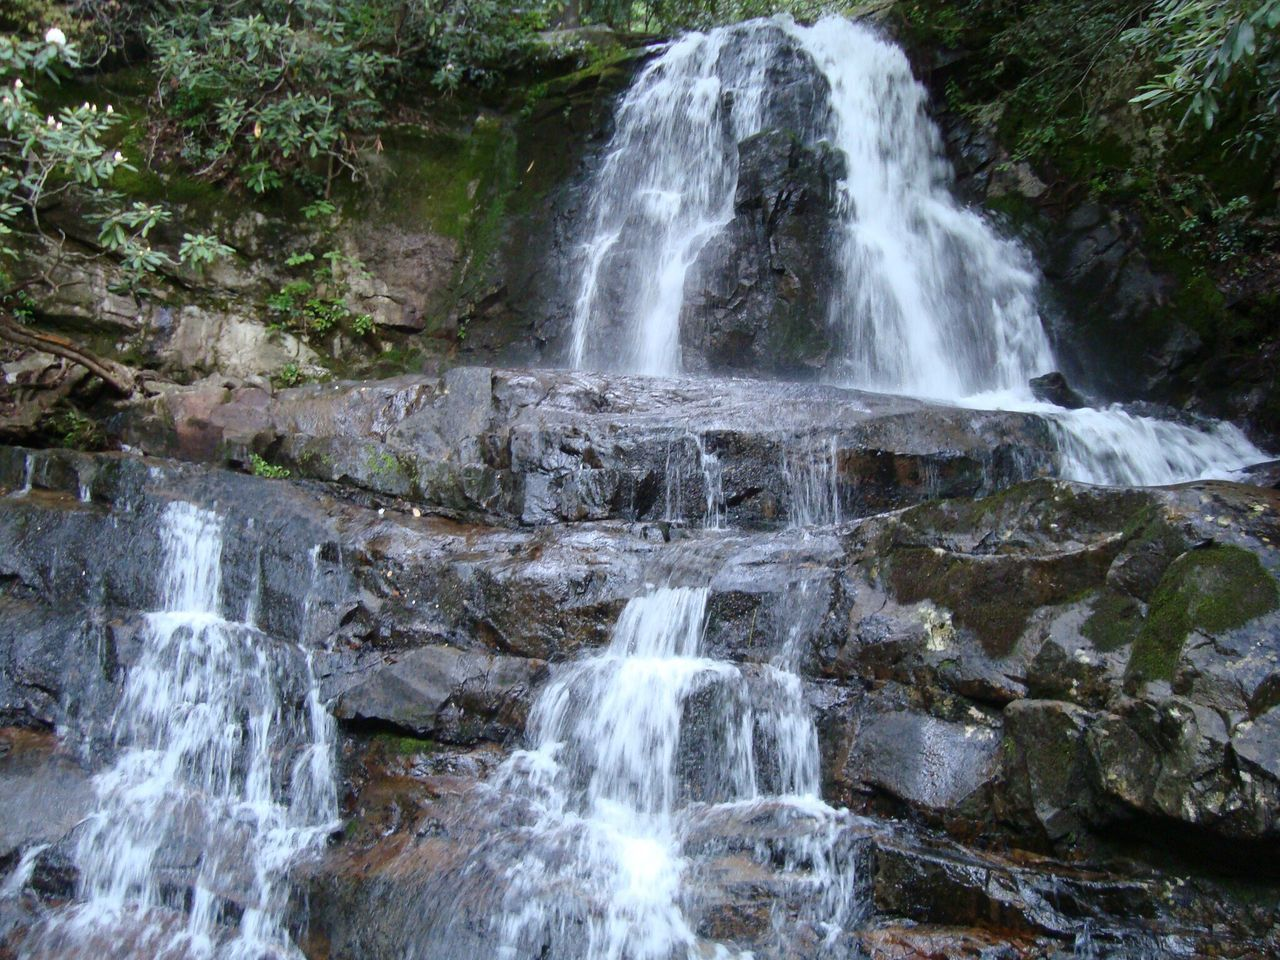 Tenessee Tenessee Scenery Smoky Mountains Cascade Water Nature Travel Destinations Travel Tourism Backgrounds Outdoors Tranquil Scene Natural Beauty Beautiful Nature Background Scenics Stone Stones & Water Stones